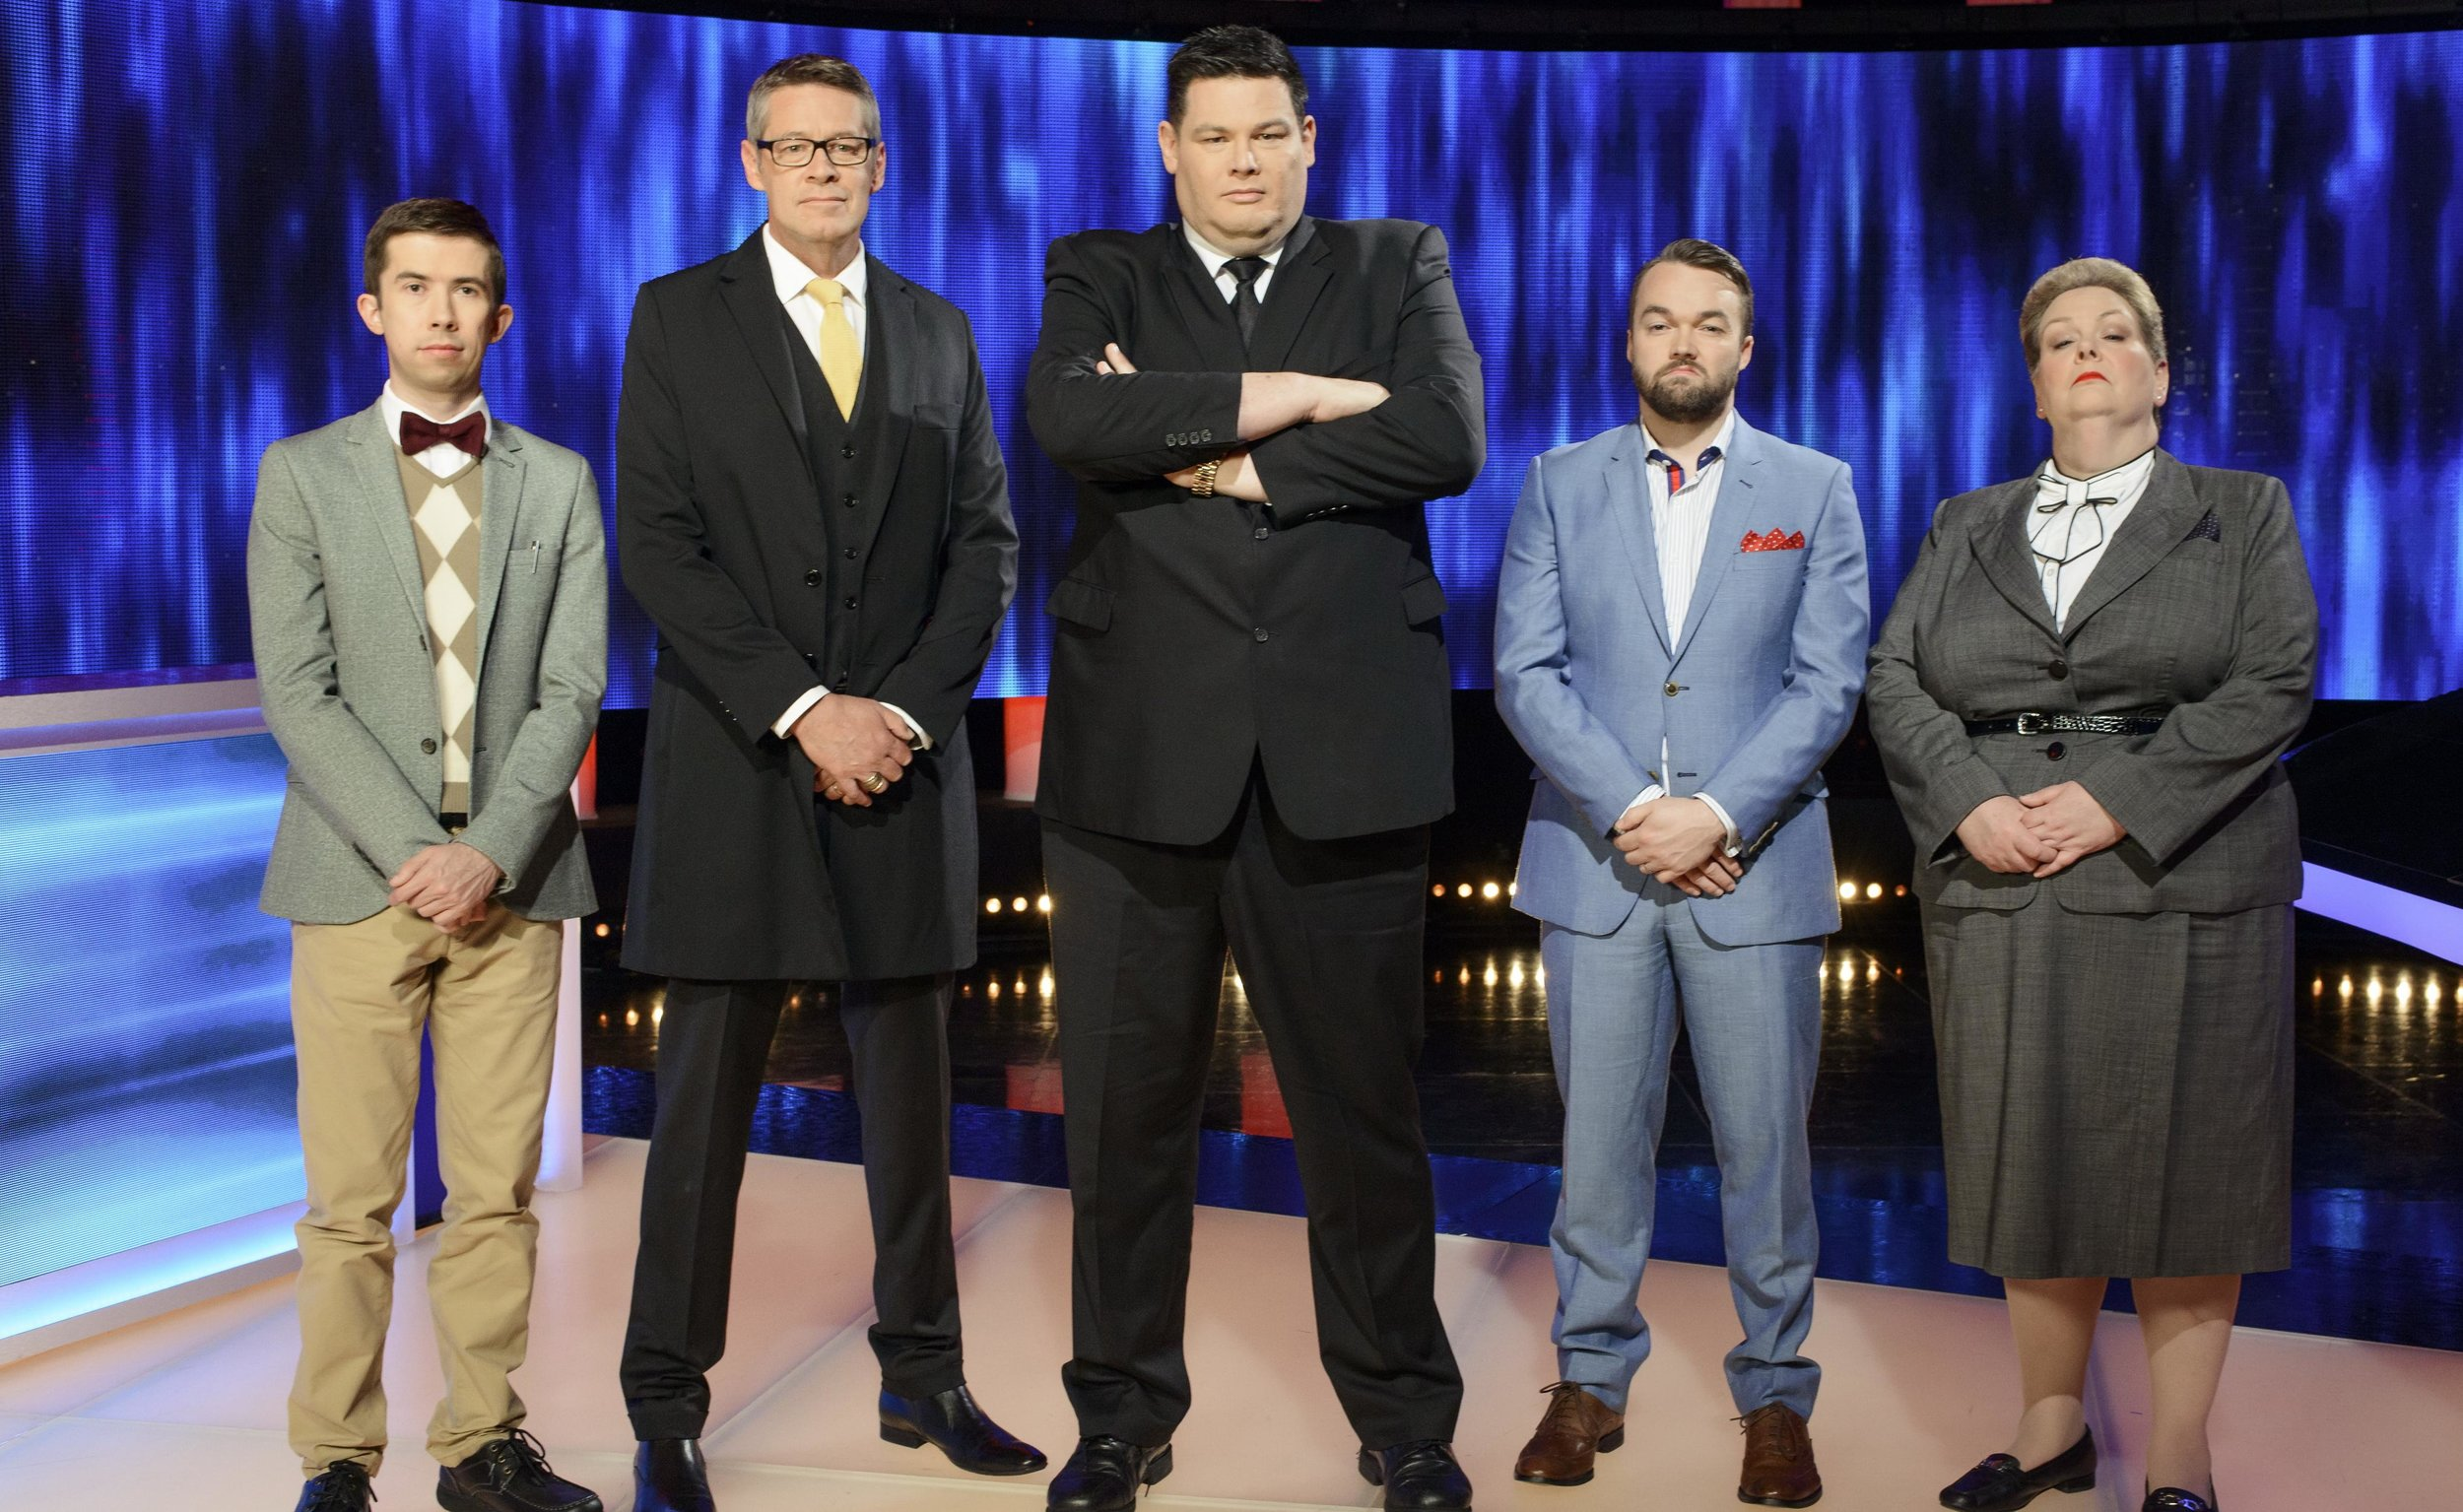 The Chaser's (from left) - Issa 'The Supernerd' Schultz, Matt 'Goliath' Parkinson ,  Mark 'The Beast' Labbett,   Brydon 'The Shark' Coverdale ,  and Anne 'The Governess' Hegerty . image - Seven